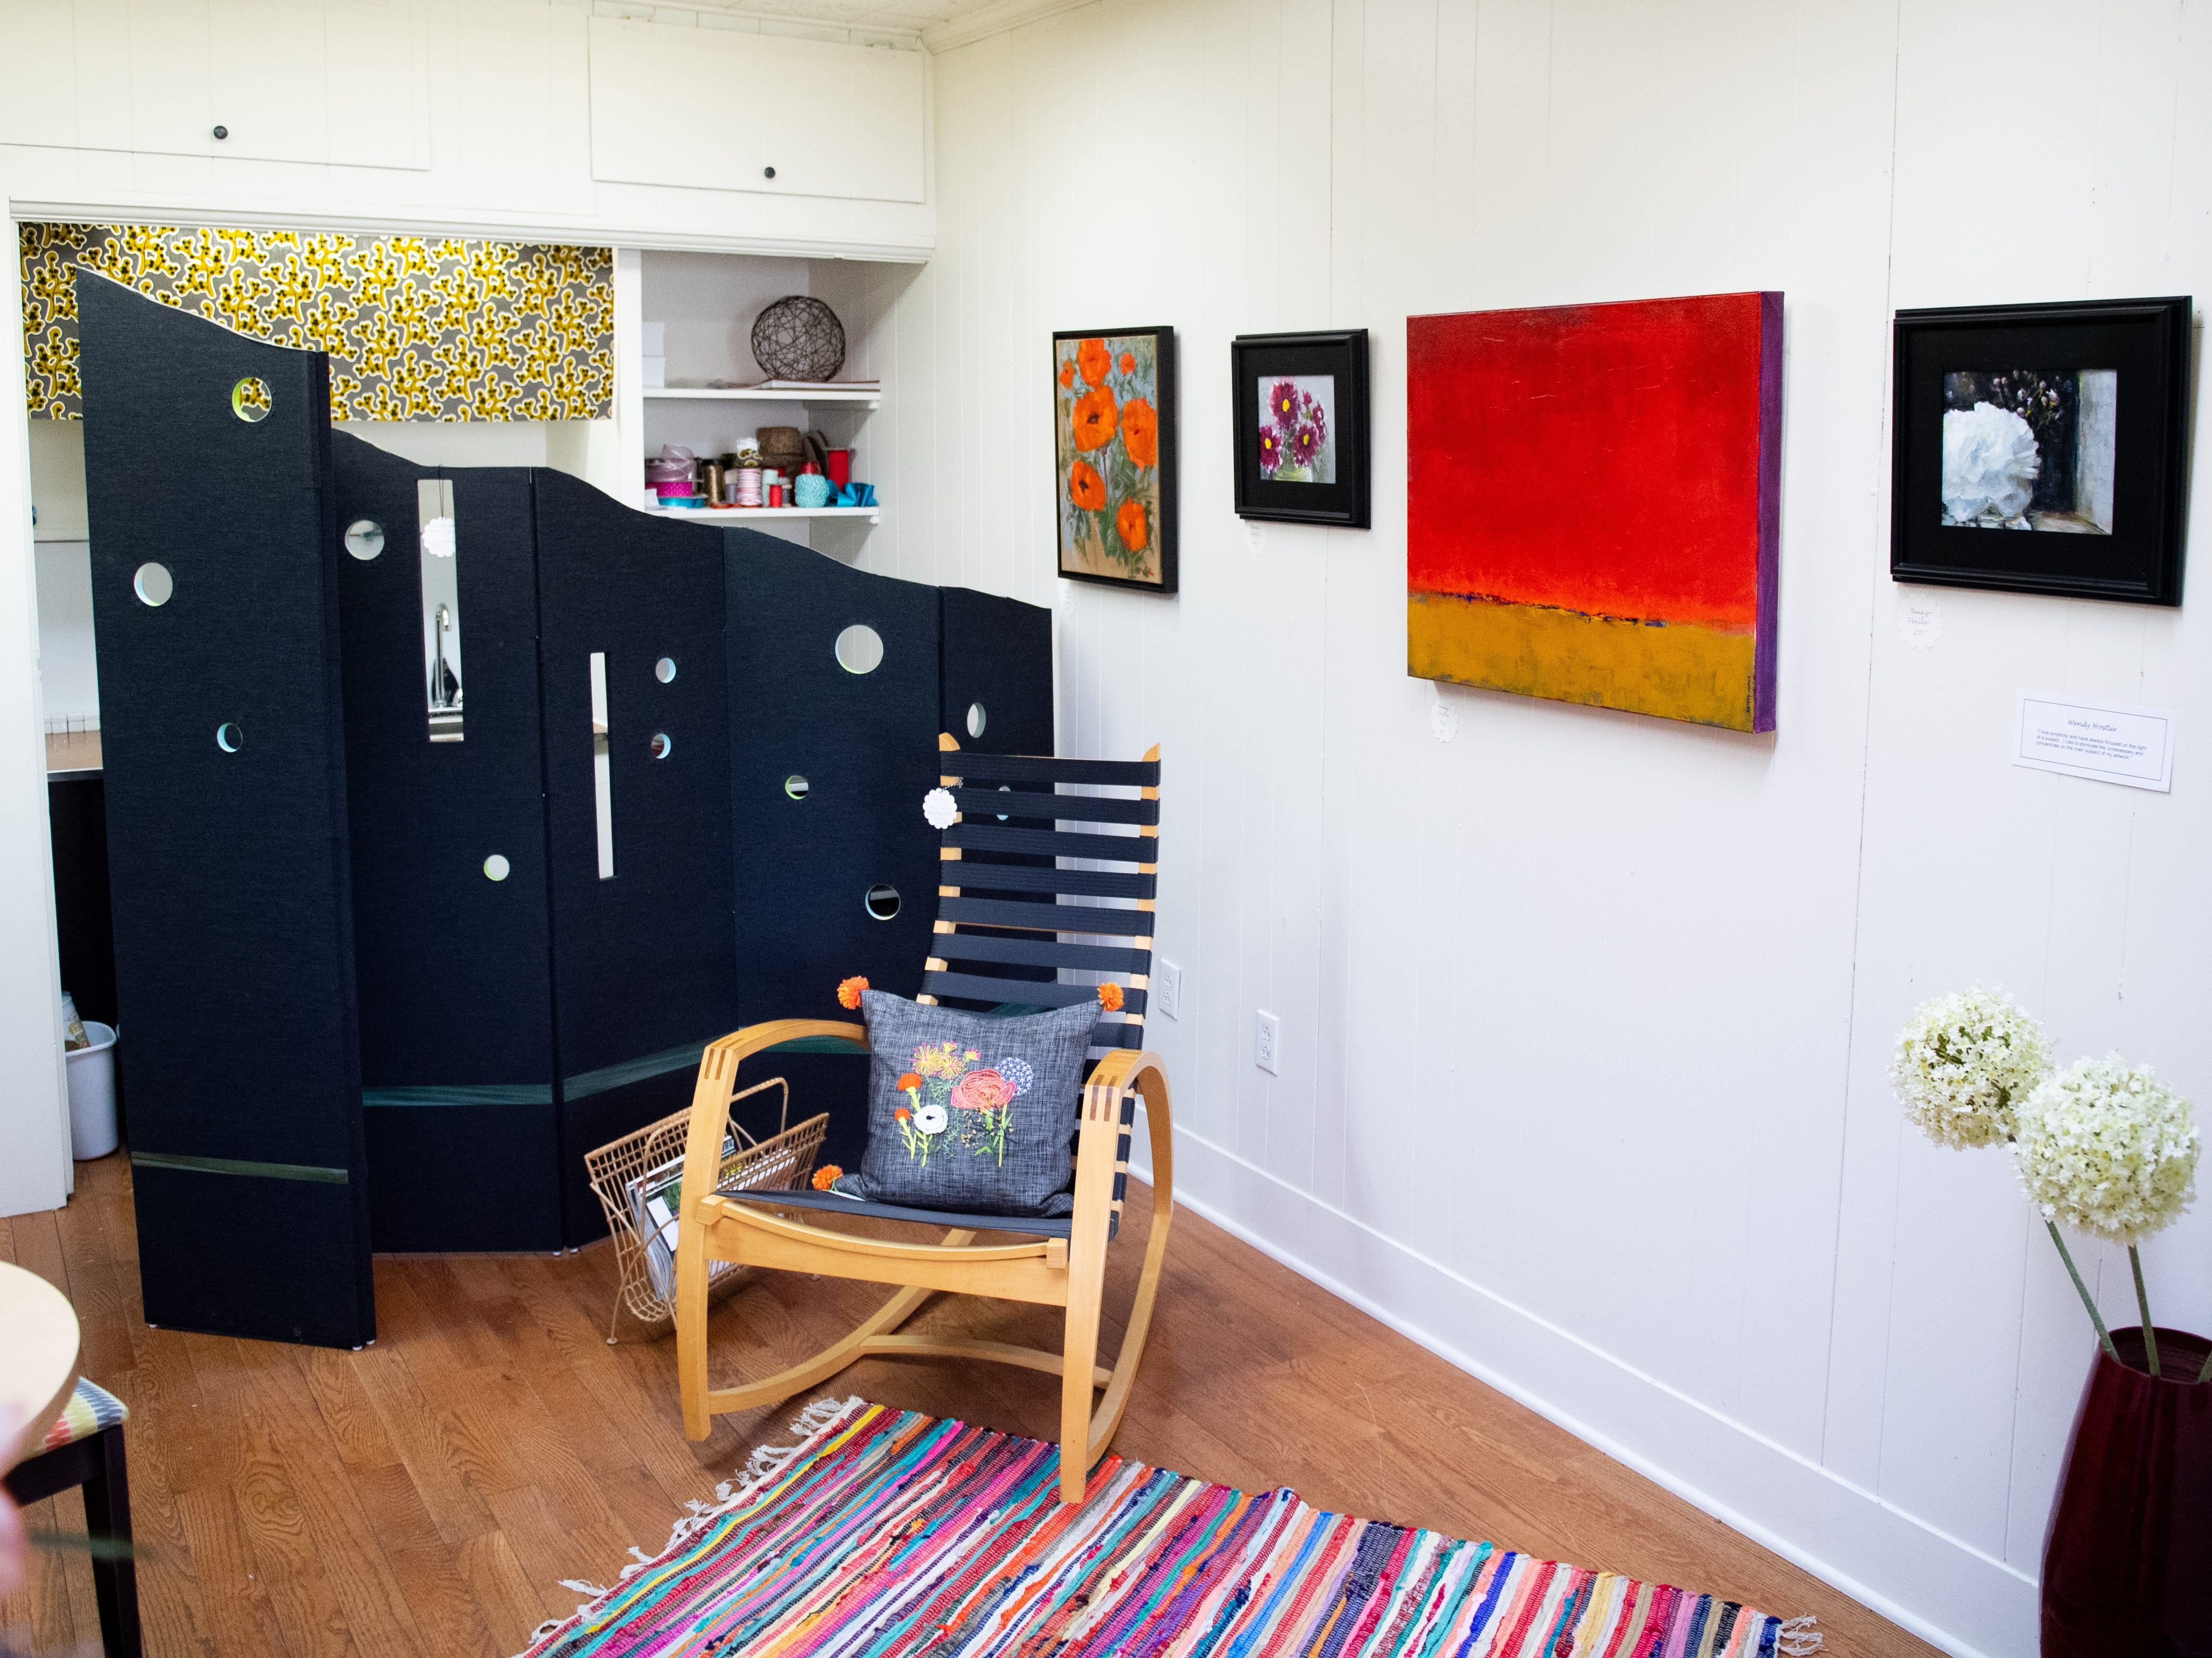 Inside Venture in downtown York. Venture is part of the Parliament Arts Organization in the Royal Square District, April 11, 2019.